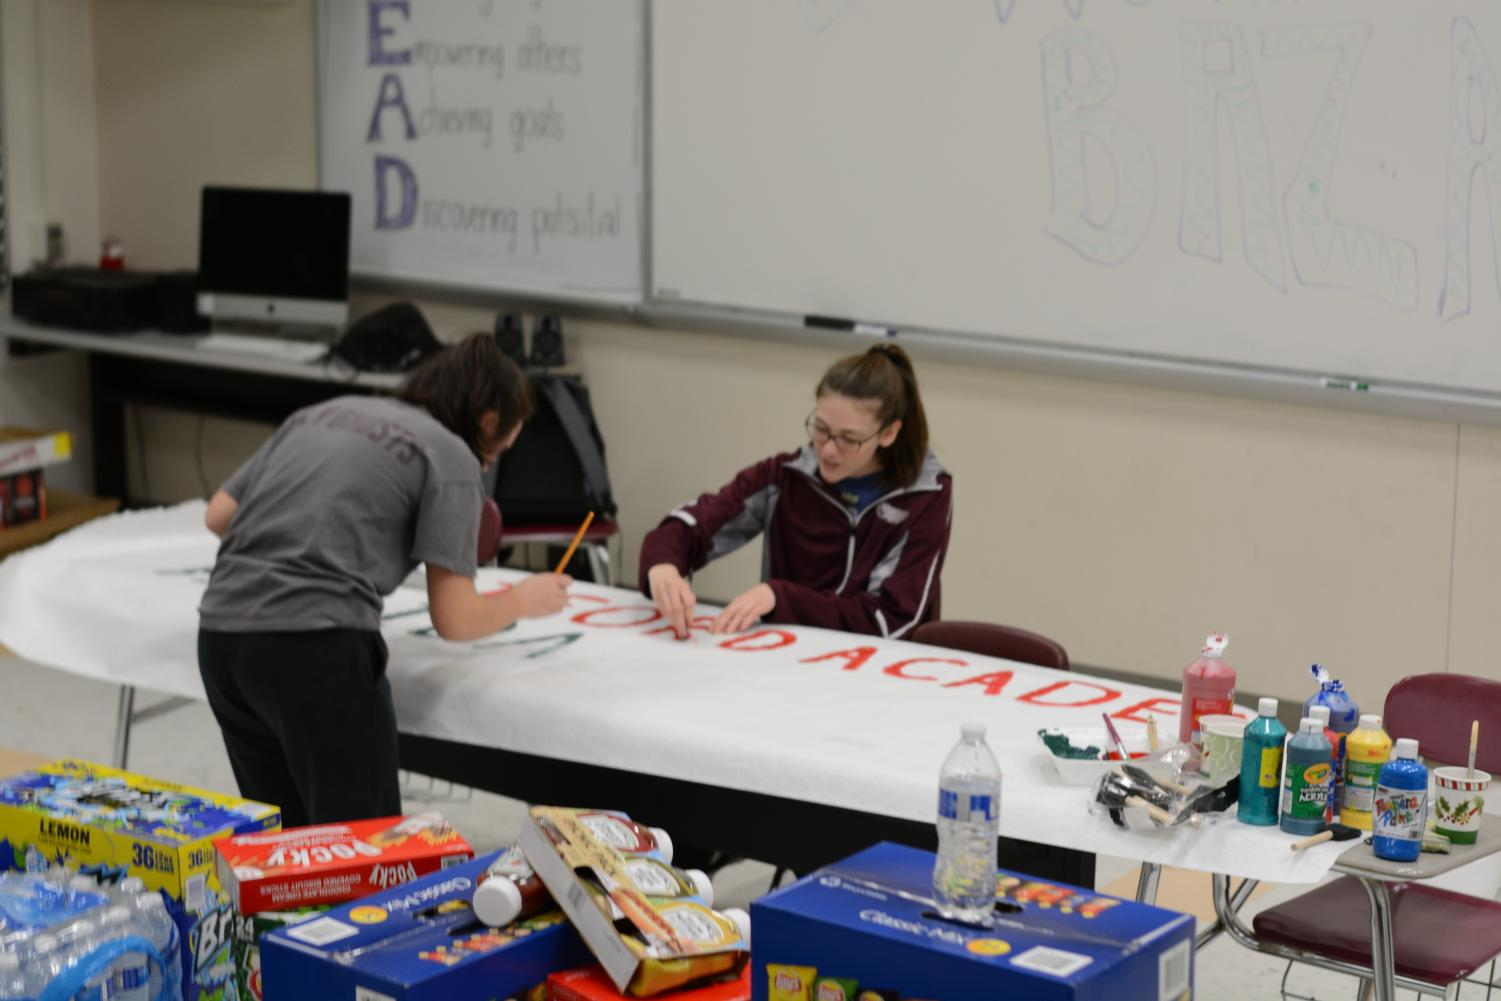 Two+student+council+members+prepare+a+sign+for+the+coming+bazaar.